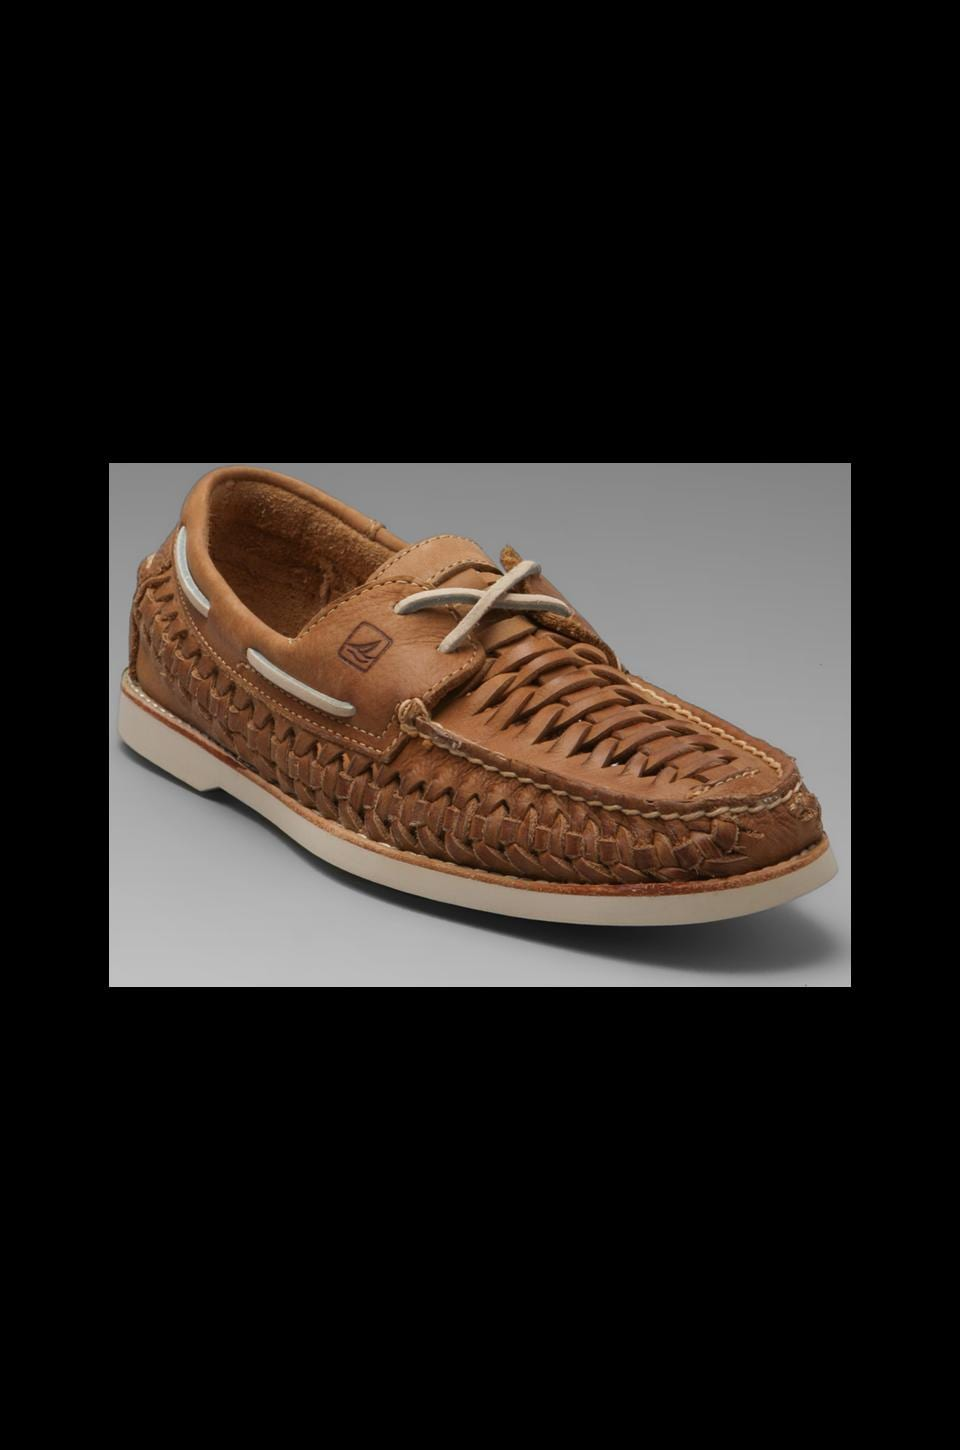 Sperry Top-Sider Seaside 2-Eye Woven in Tan